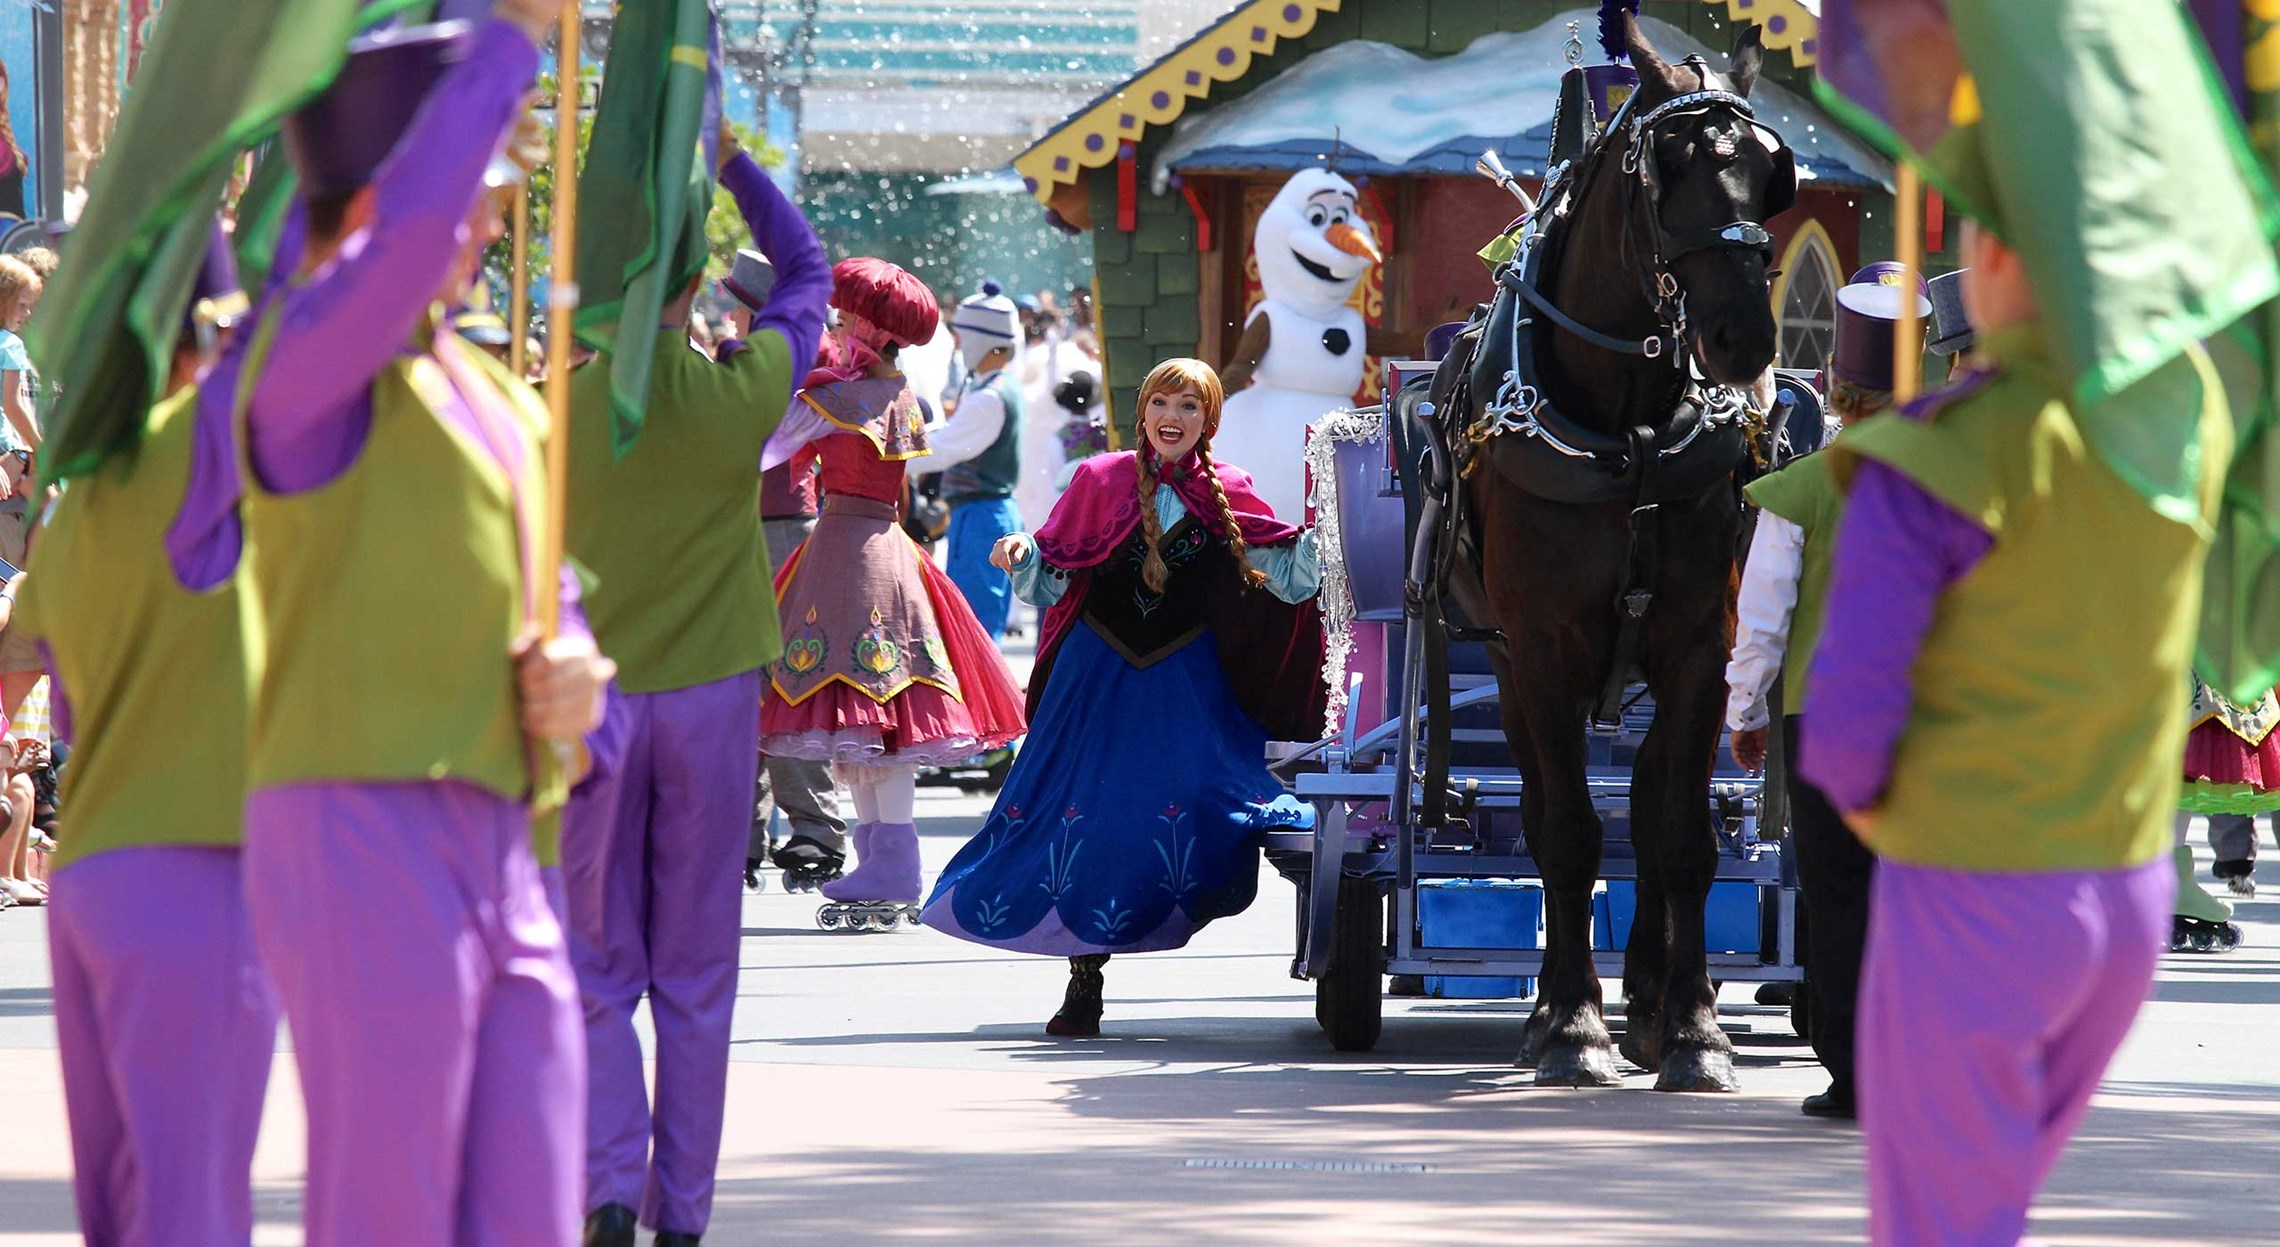 Princess Anna in the Royal Welcome at Disney's Hollywood Studios